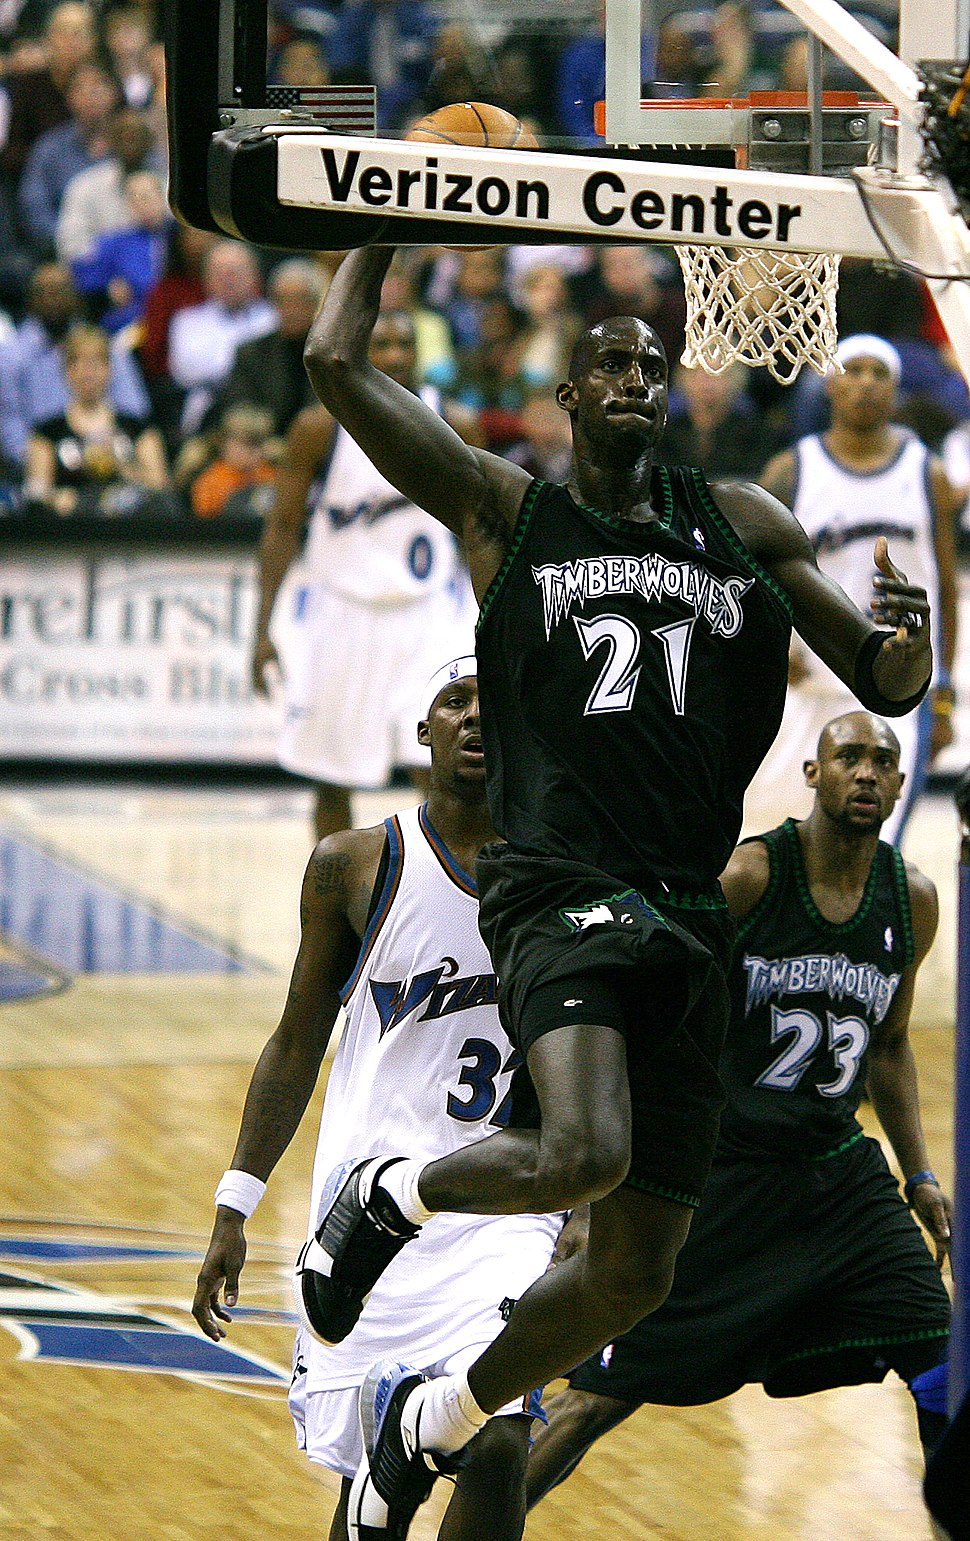 Kevin Garnett with the Minnesota Timberwolves dunking, 2007